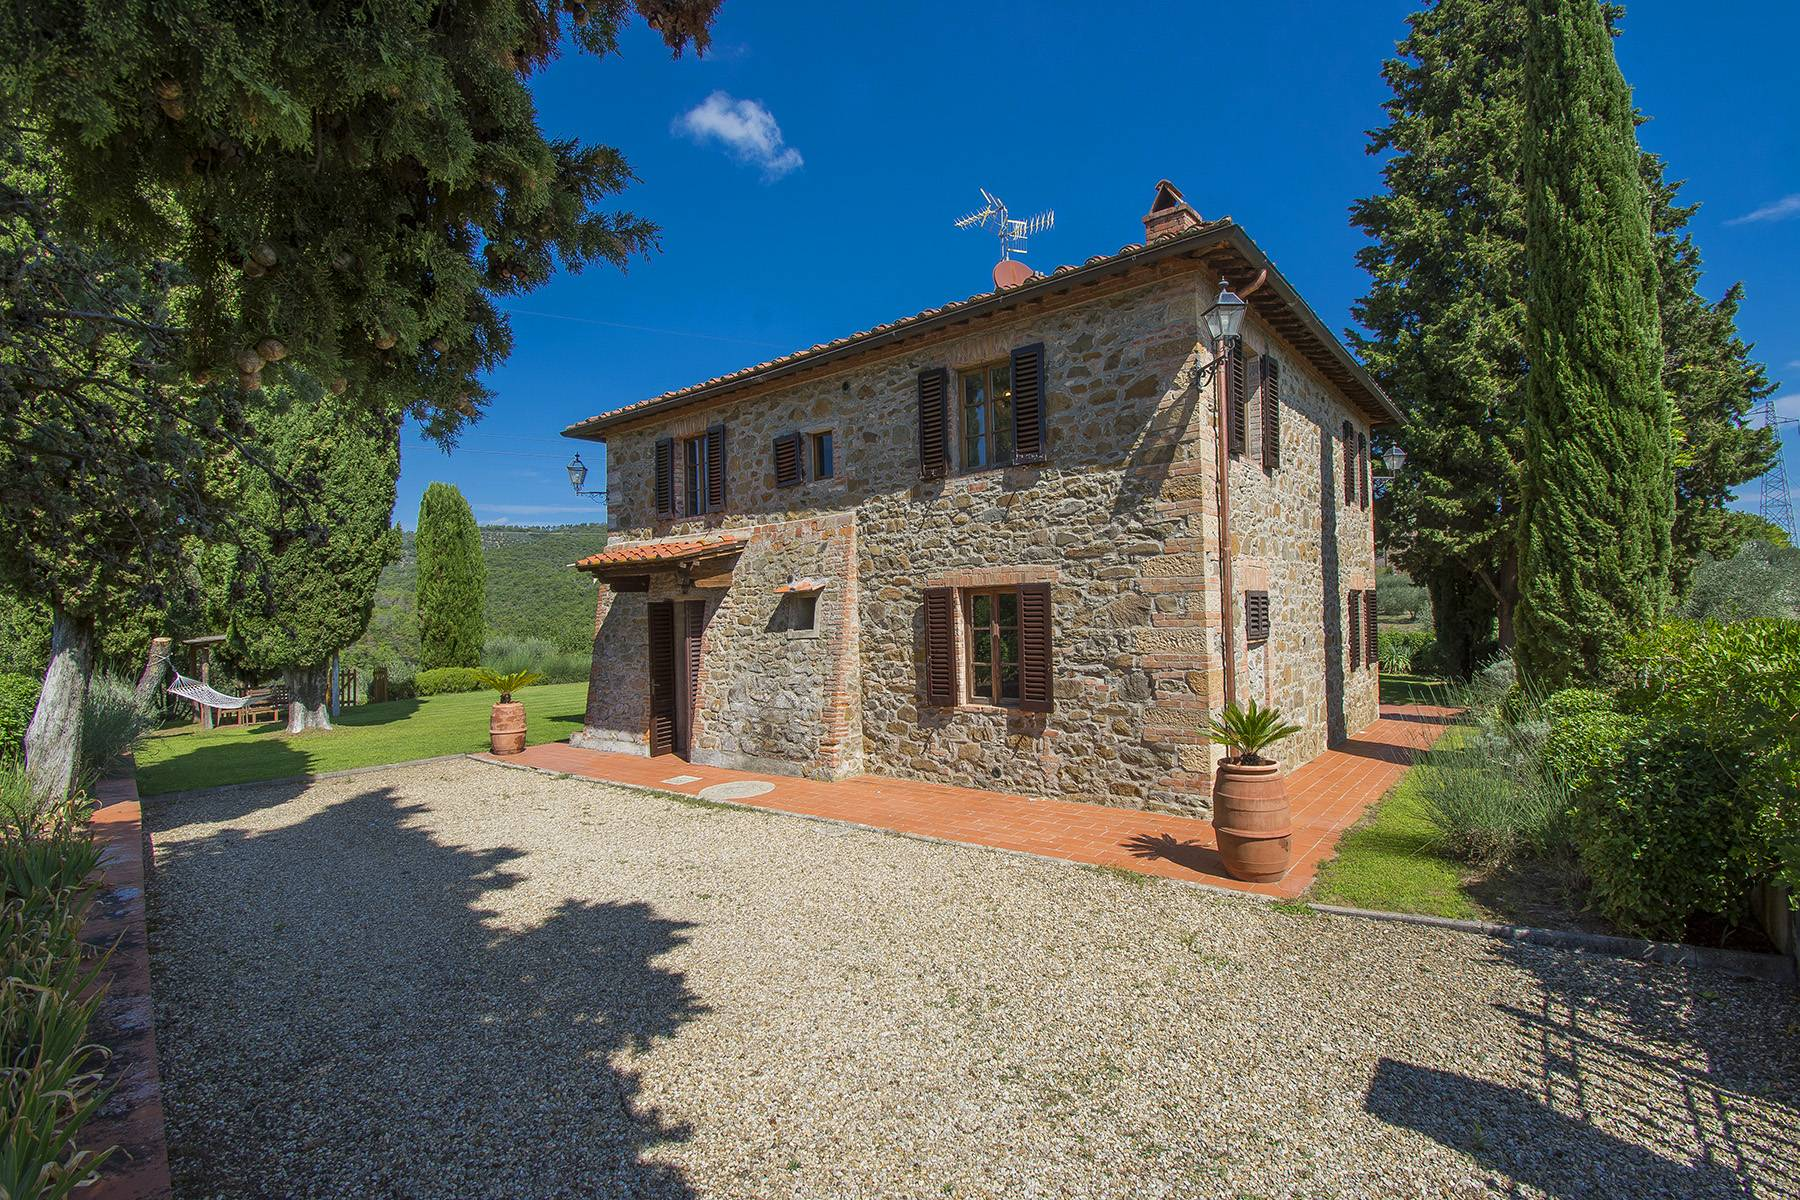 Rustic House in the Tuscan Hills for Sale - 17